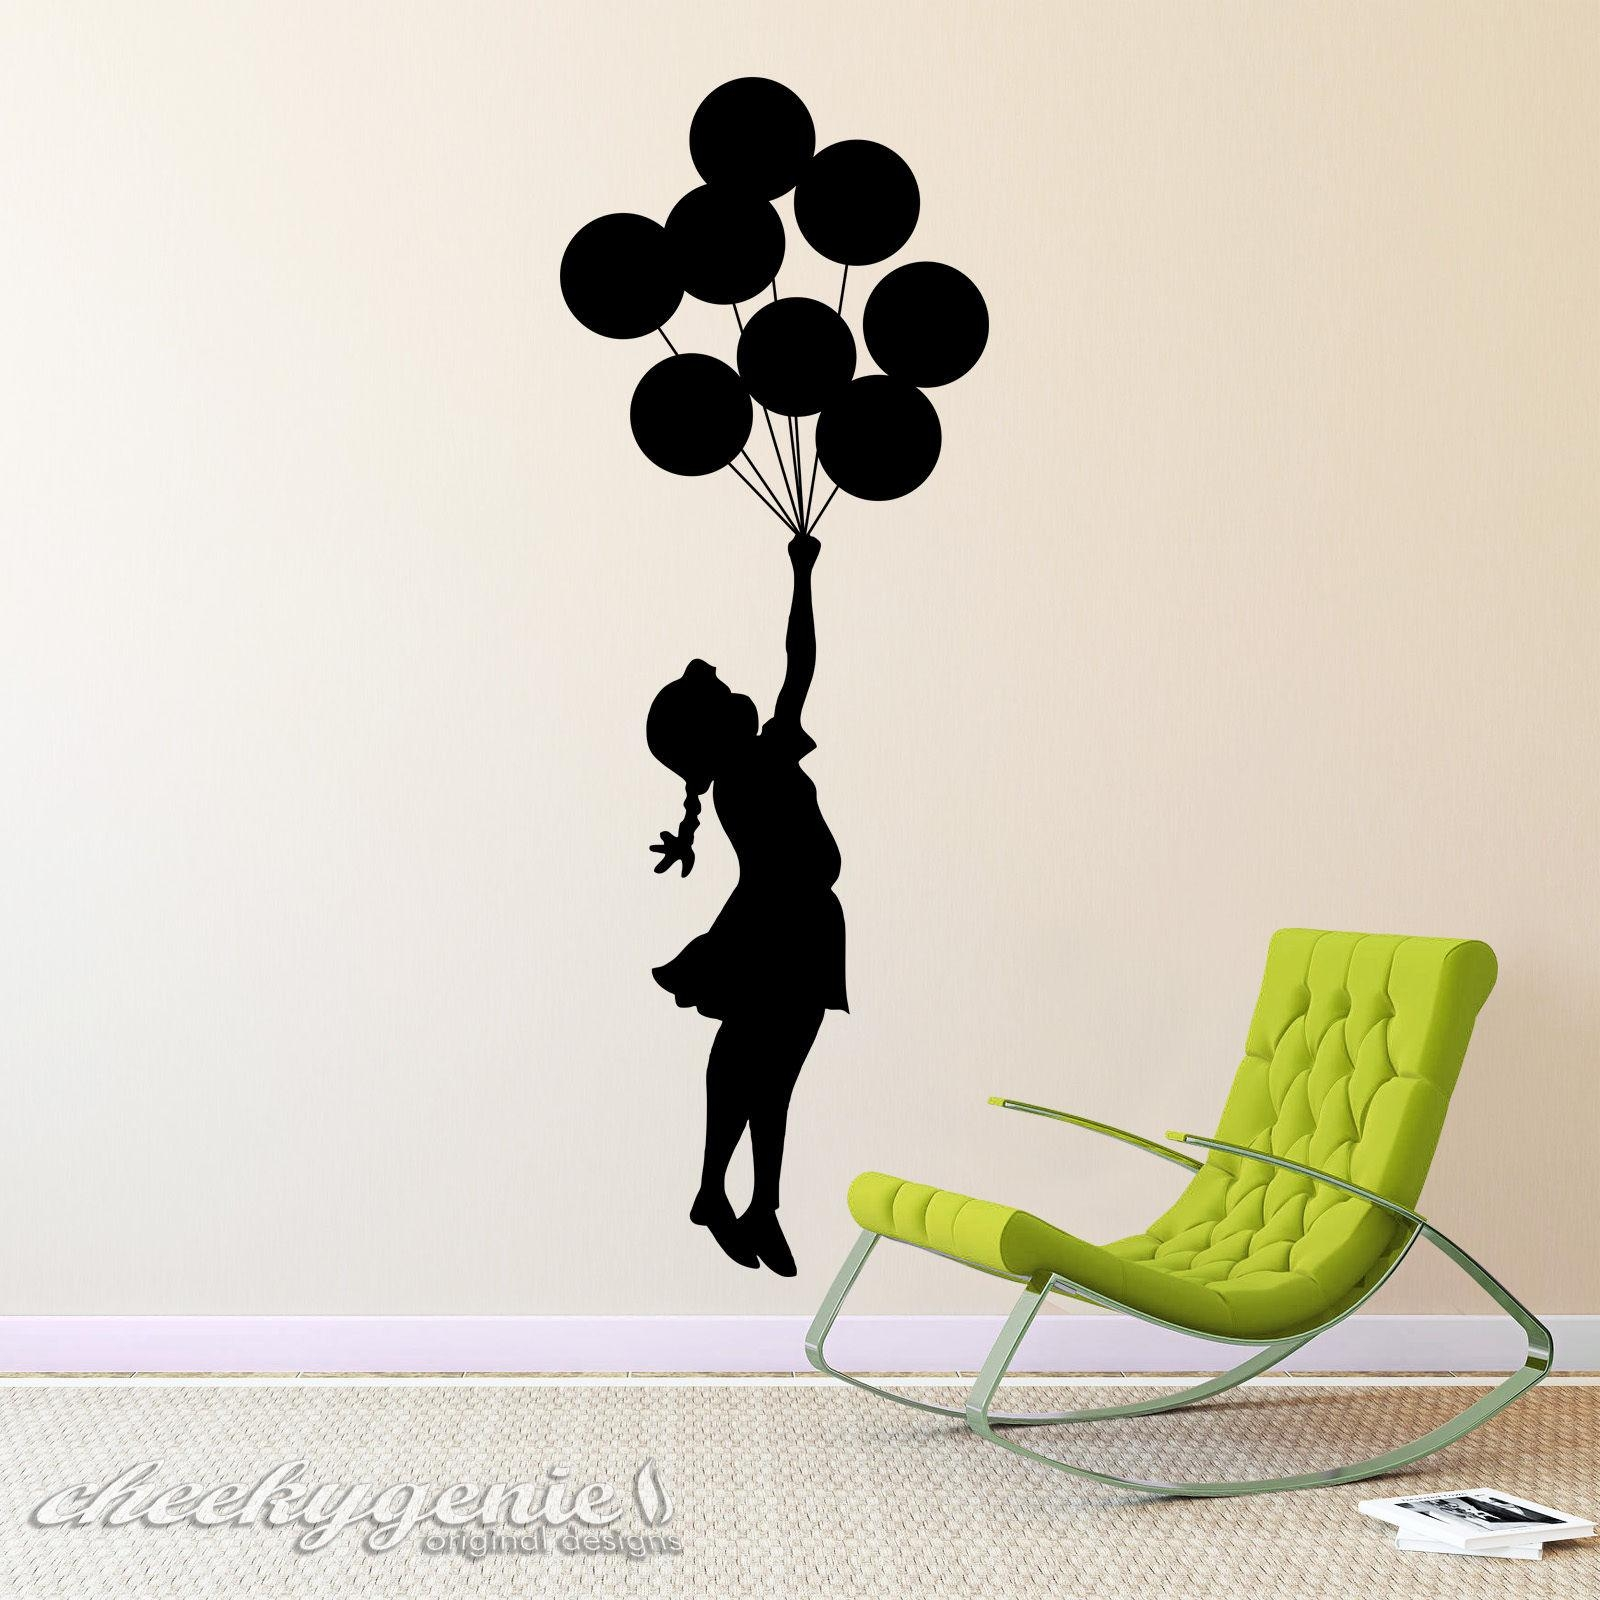 D294 Banksy Street Art Floating Balloon Girl (Image 6 of 20)